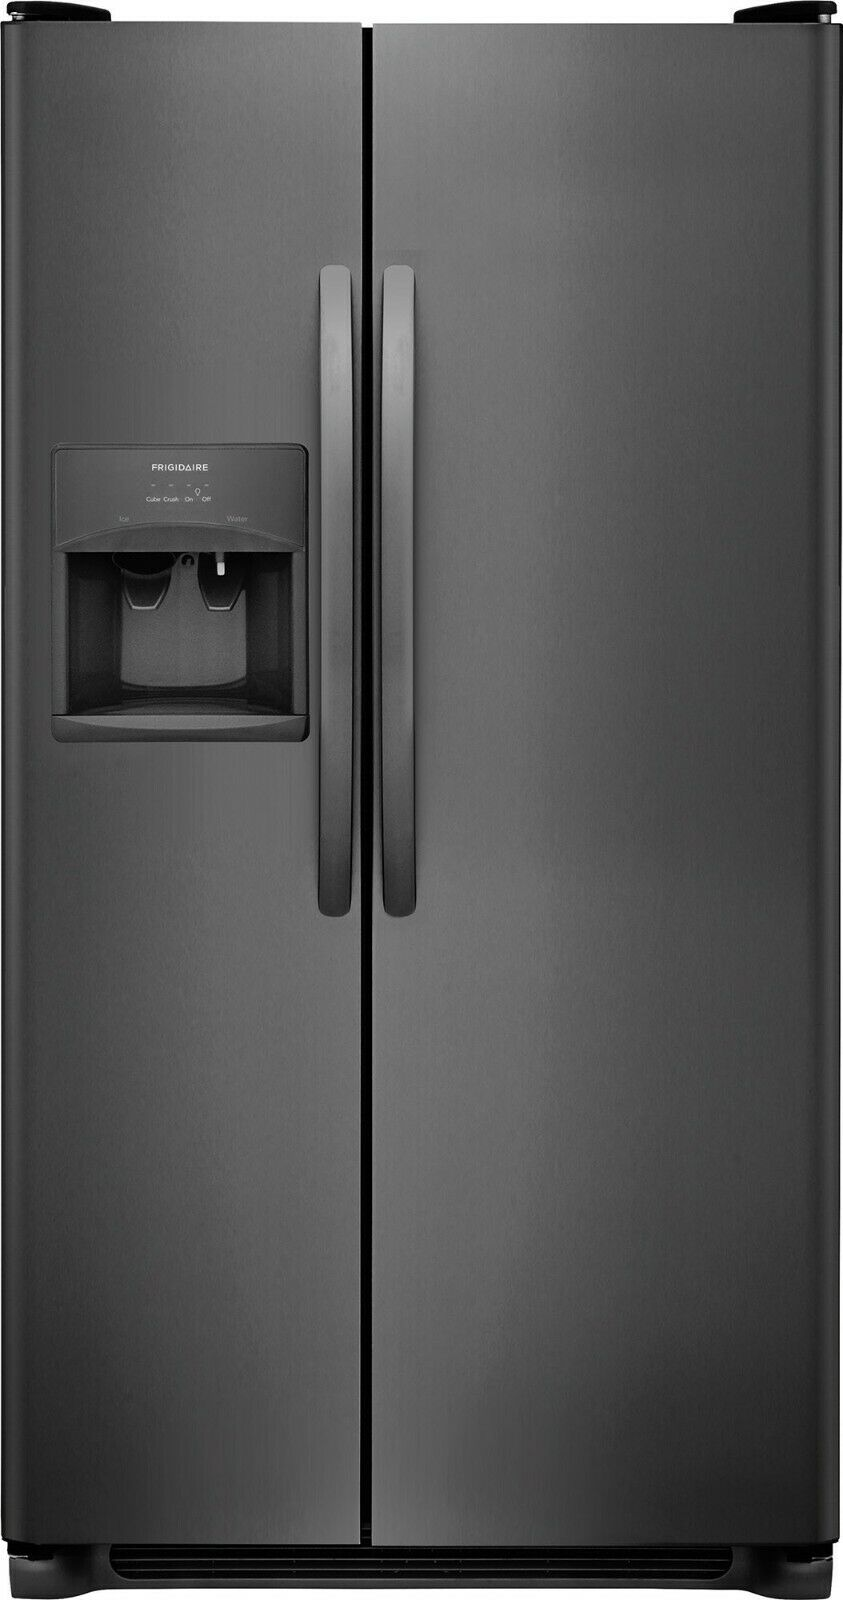 Frigidaire FFSS2315TD 22.1 cu.ft. Side-by-Side Refrigerator